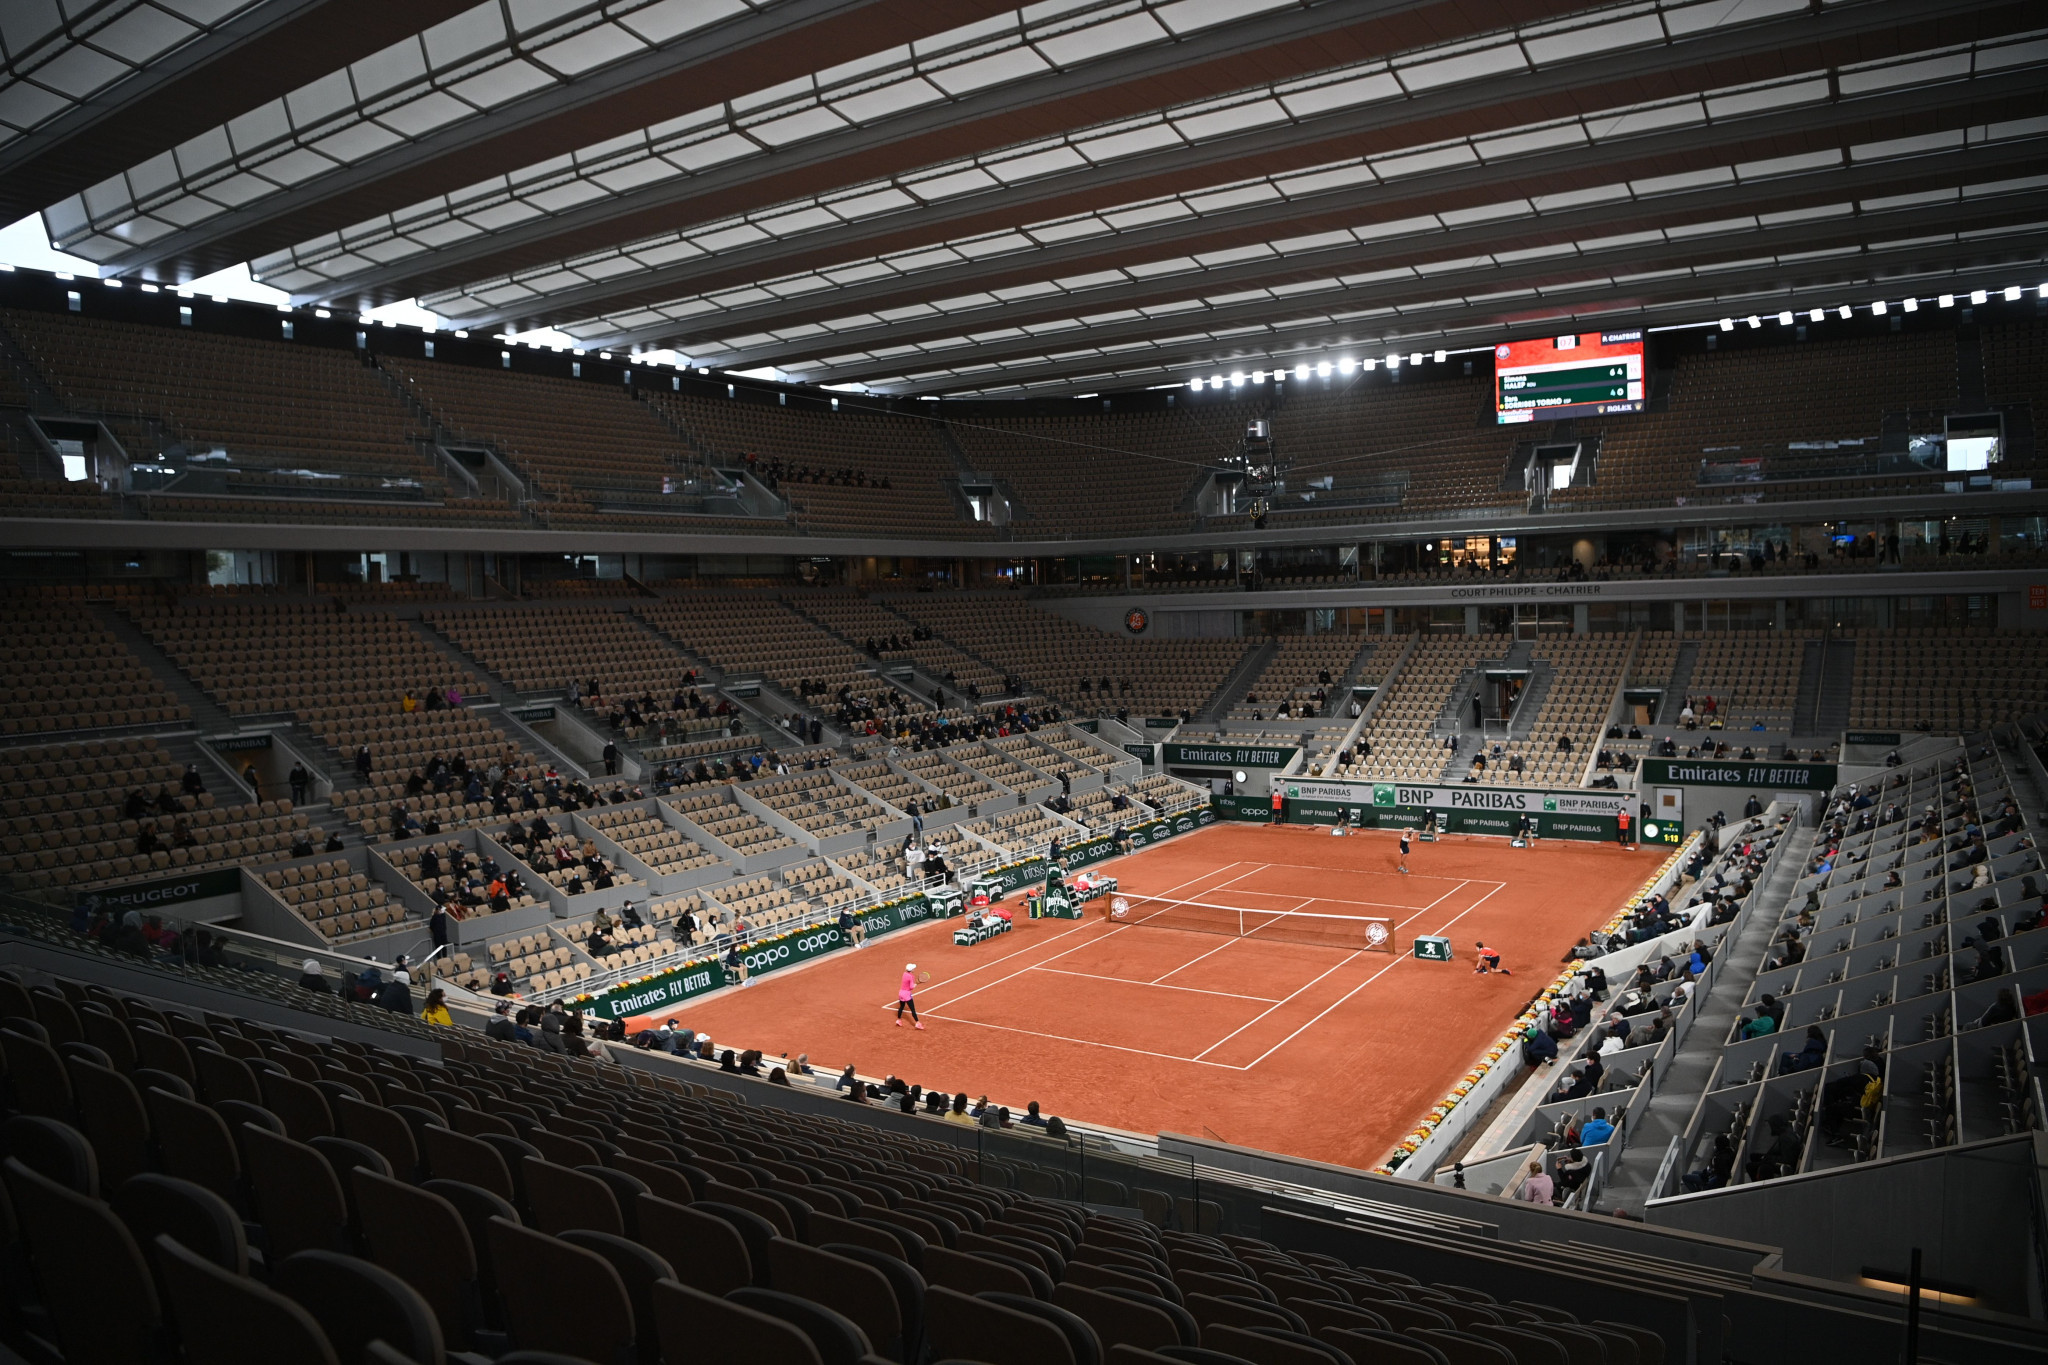 Only 1,000 spectators were admitted to Roland Garros due to the coronavirus pandemic ©Getty Images